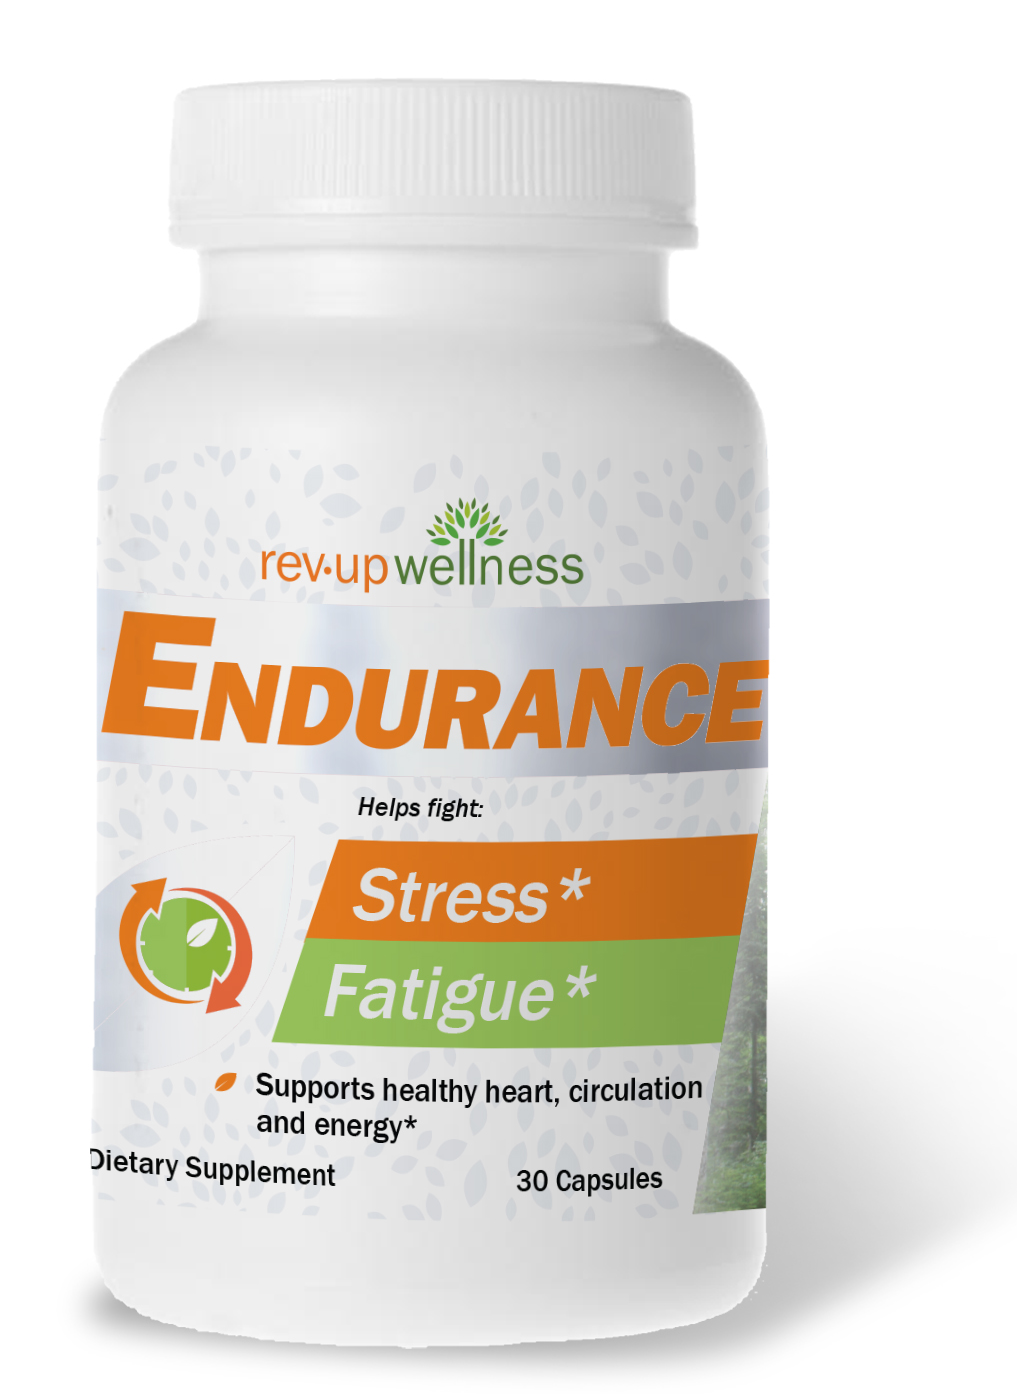 endurance-bottle-mock-up-front.png